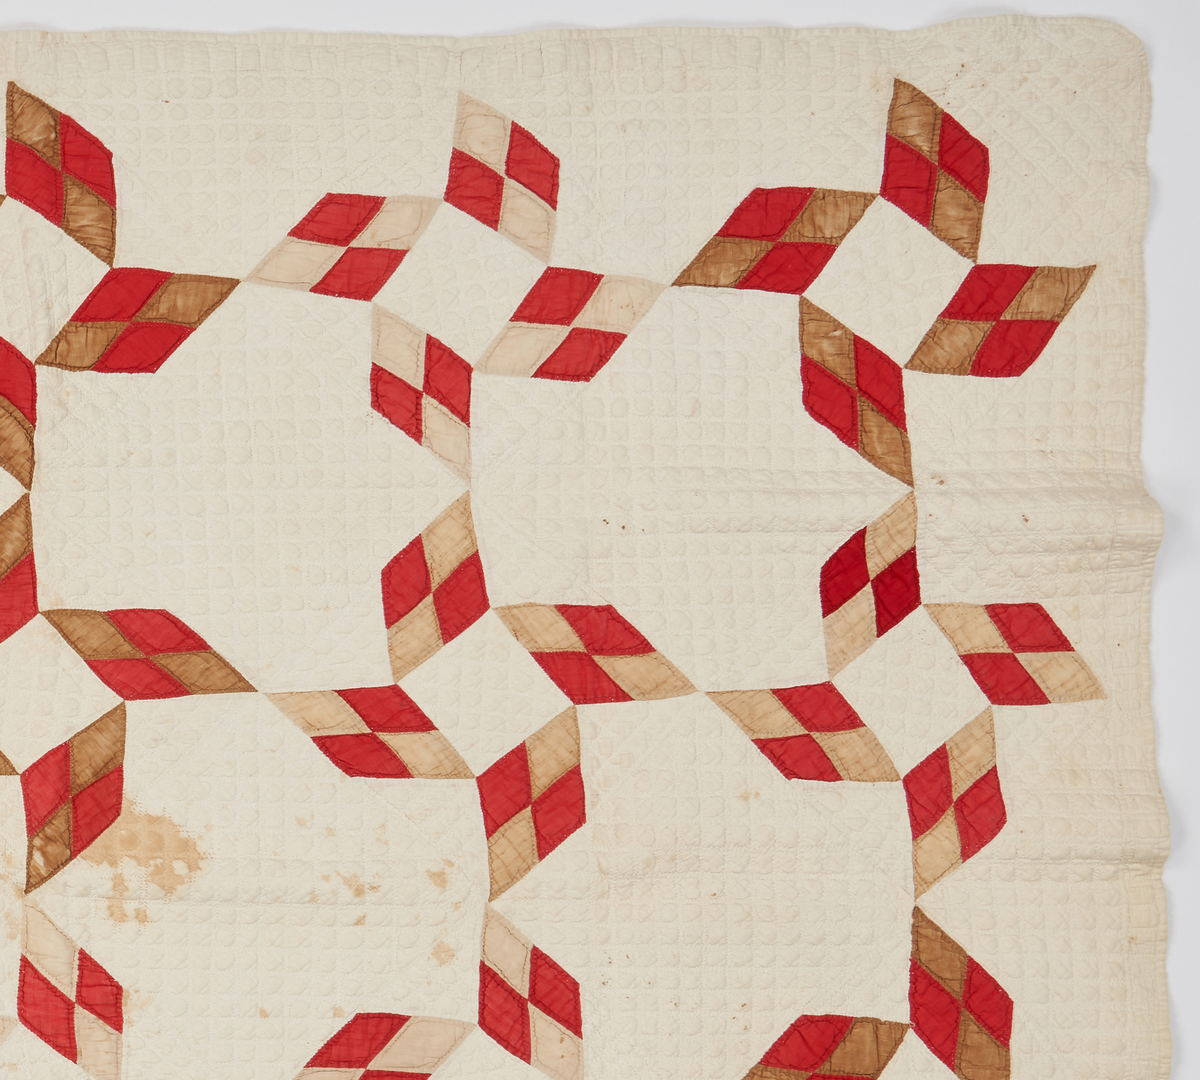 Lot 1139: 2 Southern Quilts incl. White Work Quilt